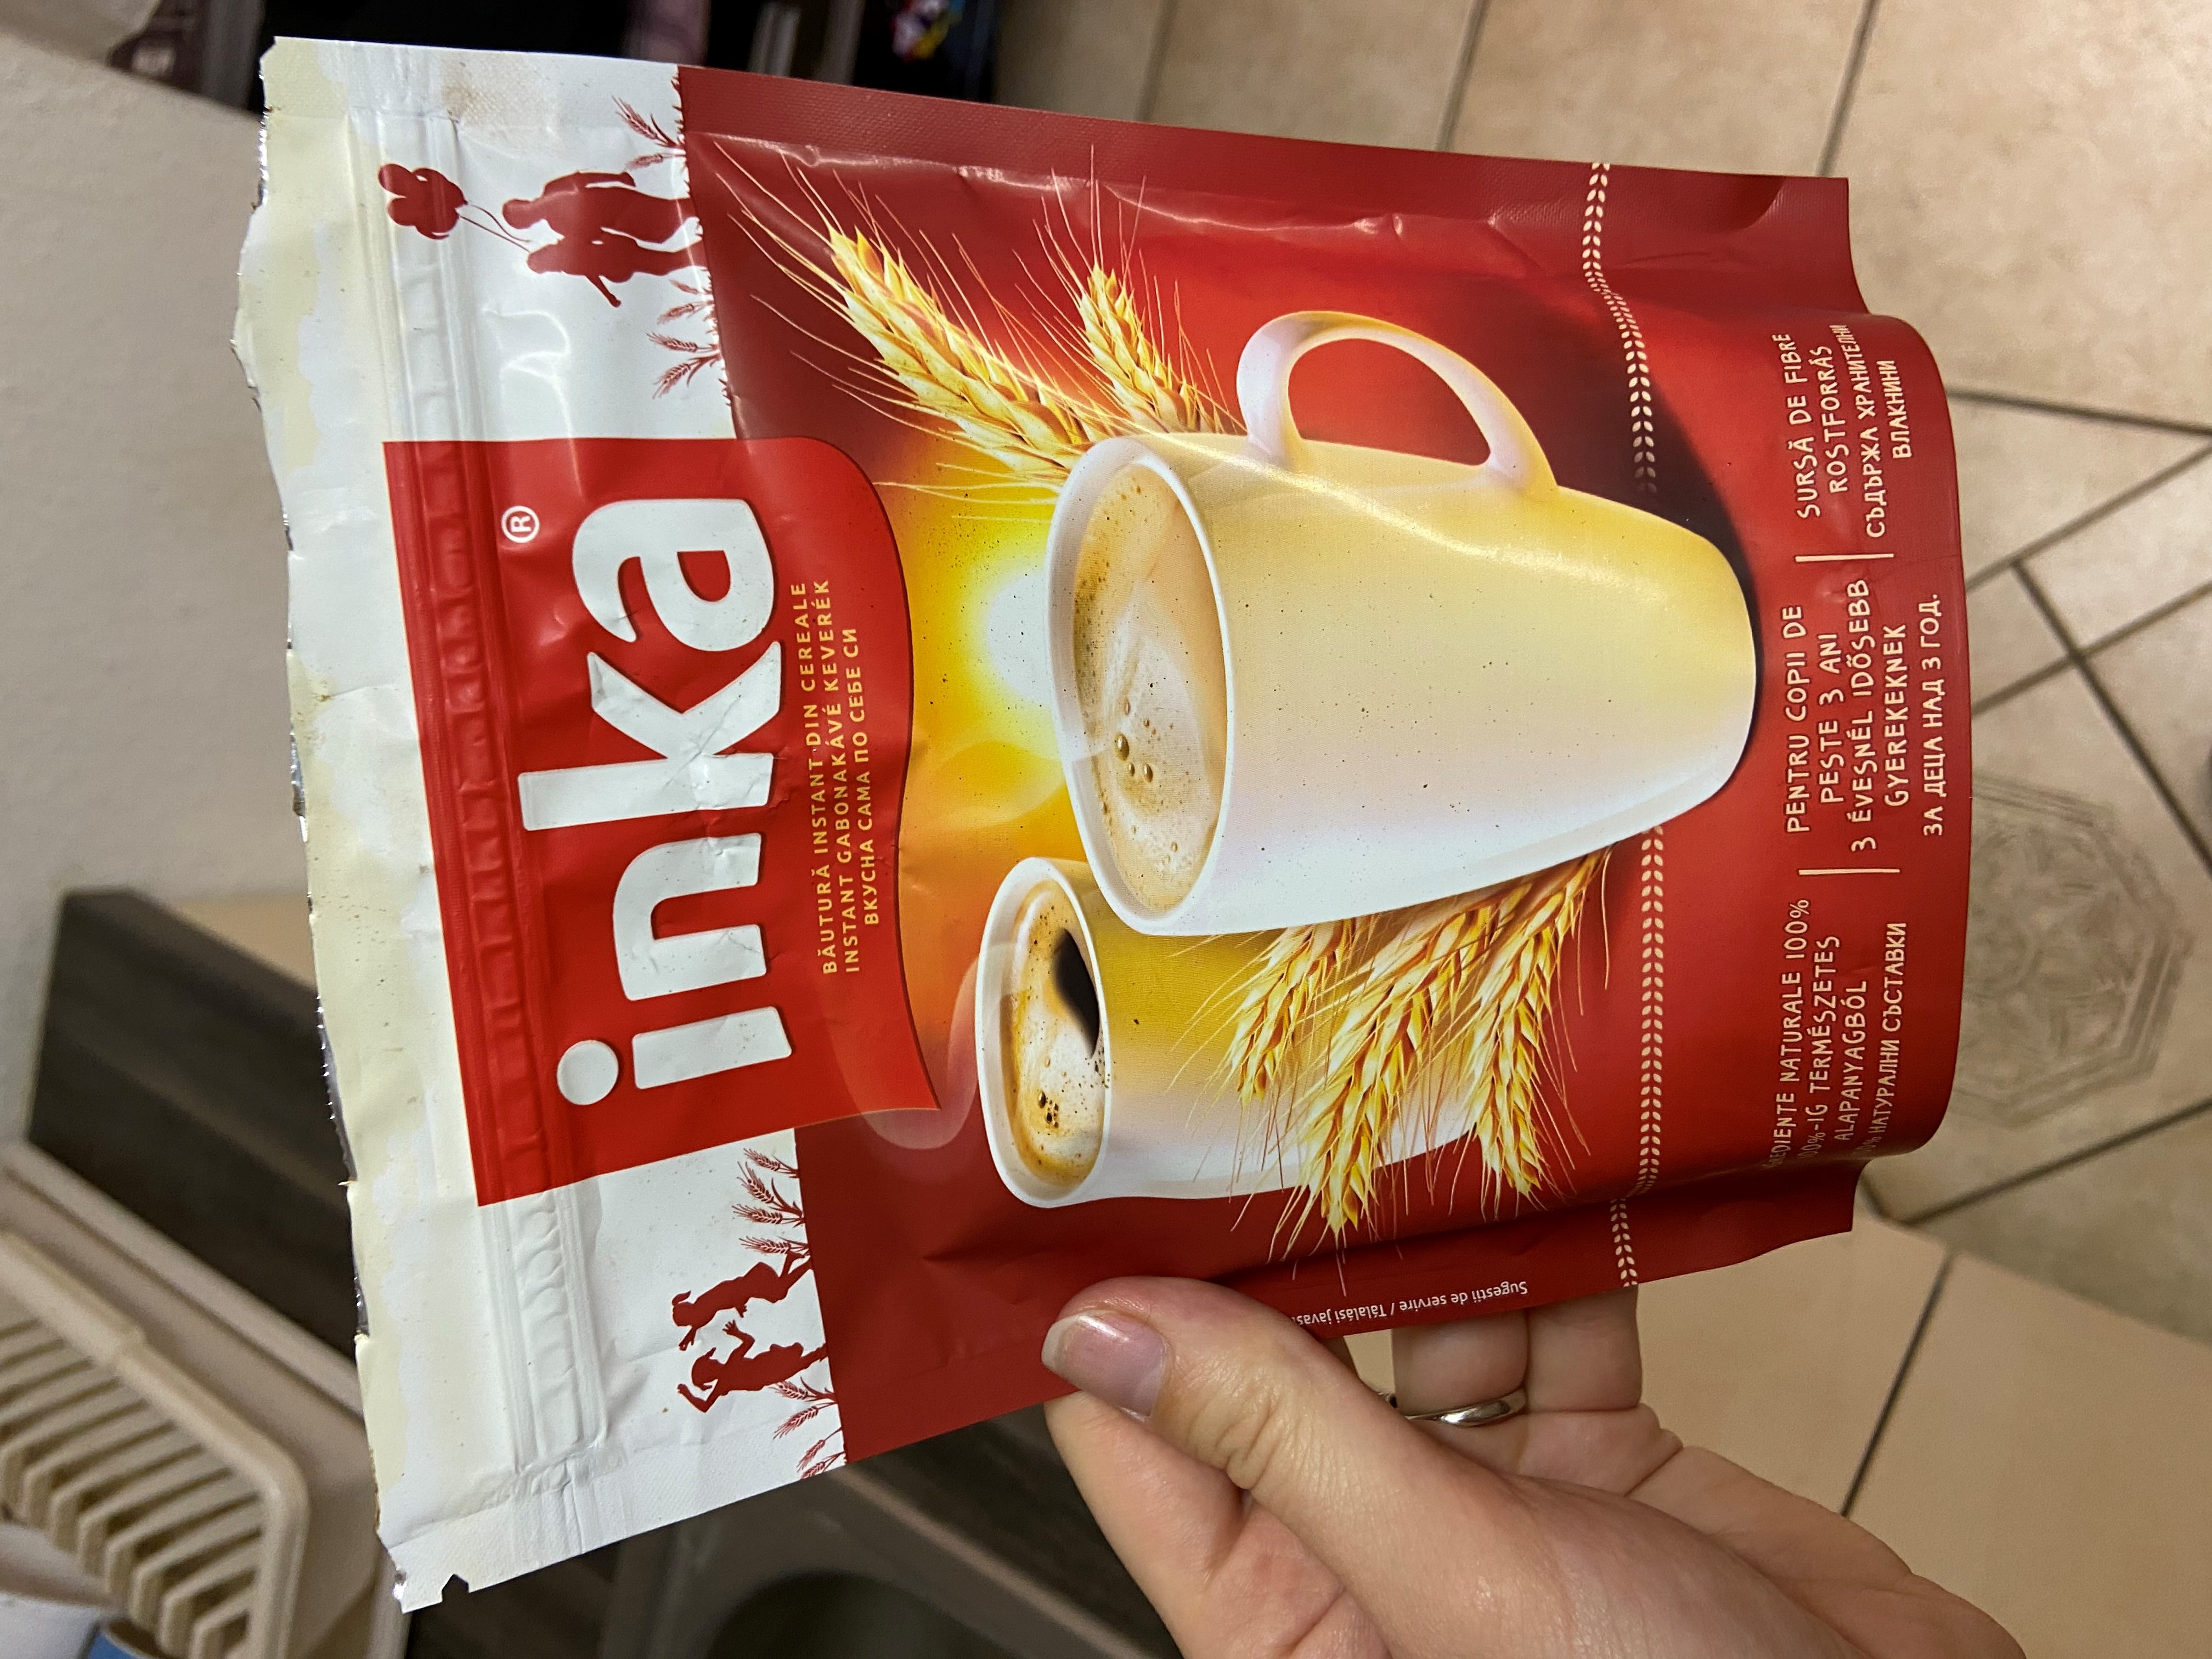 The pandemic made me coffee addict